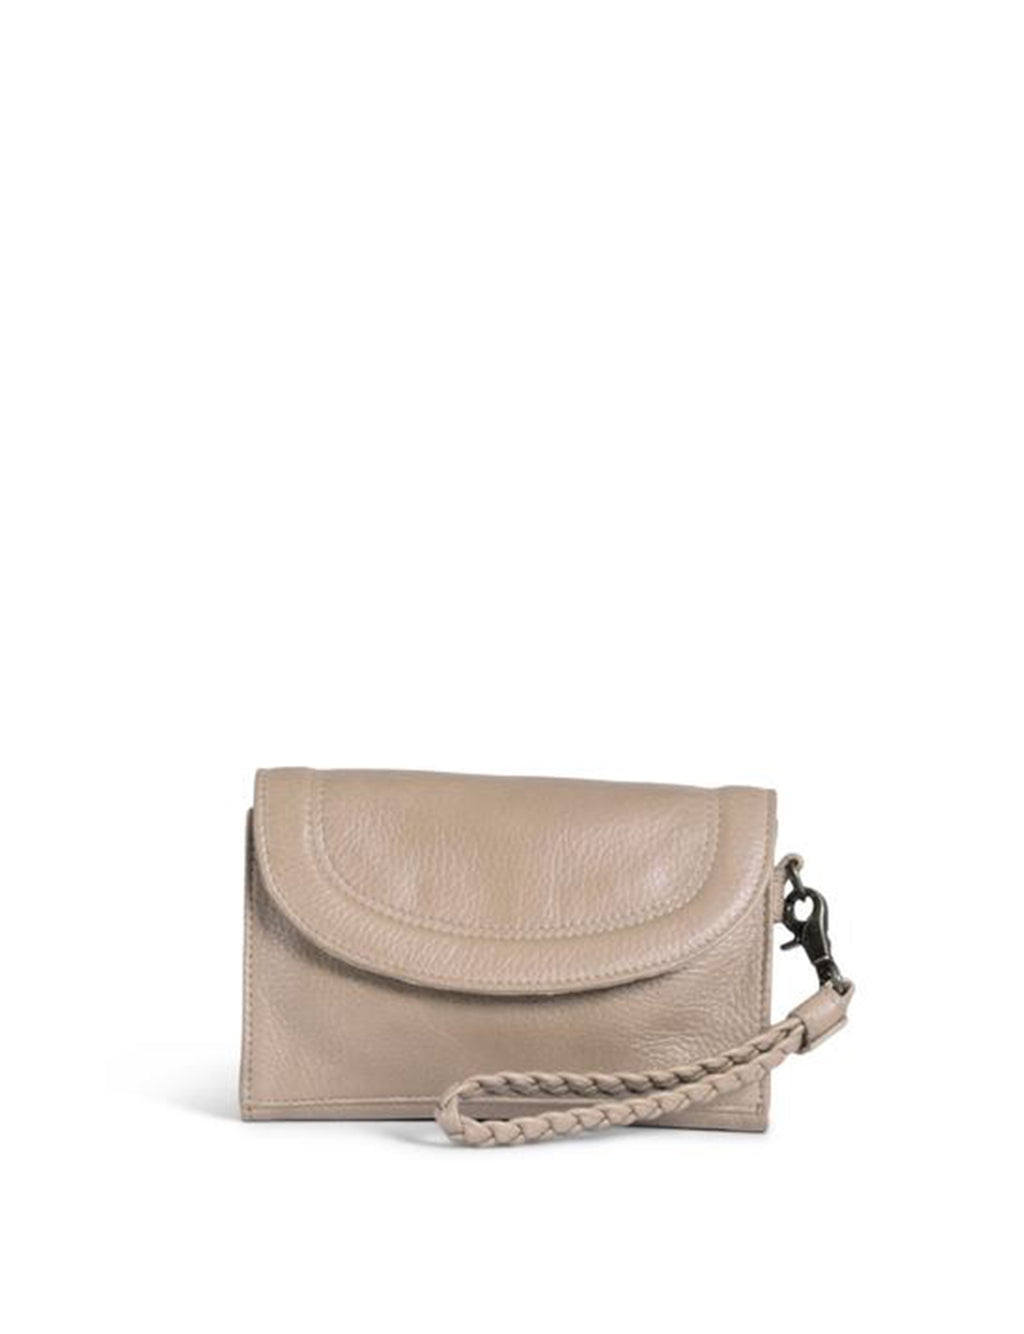 Day & Mood India Wallet, Light Mocha